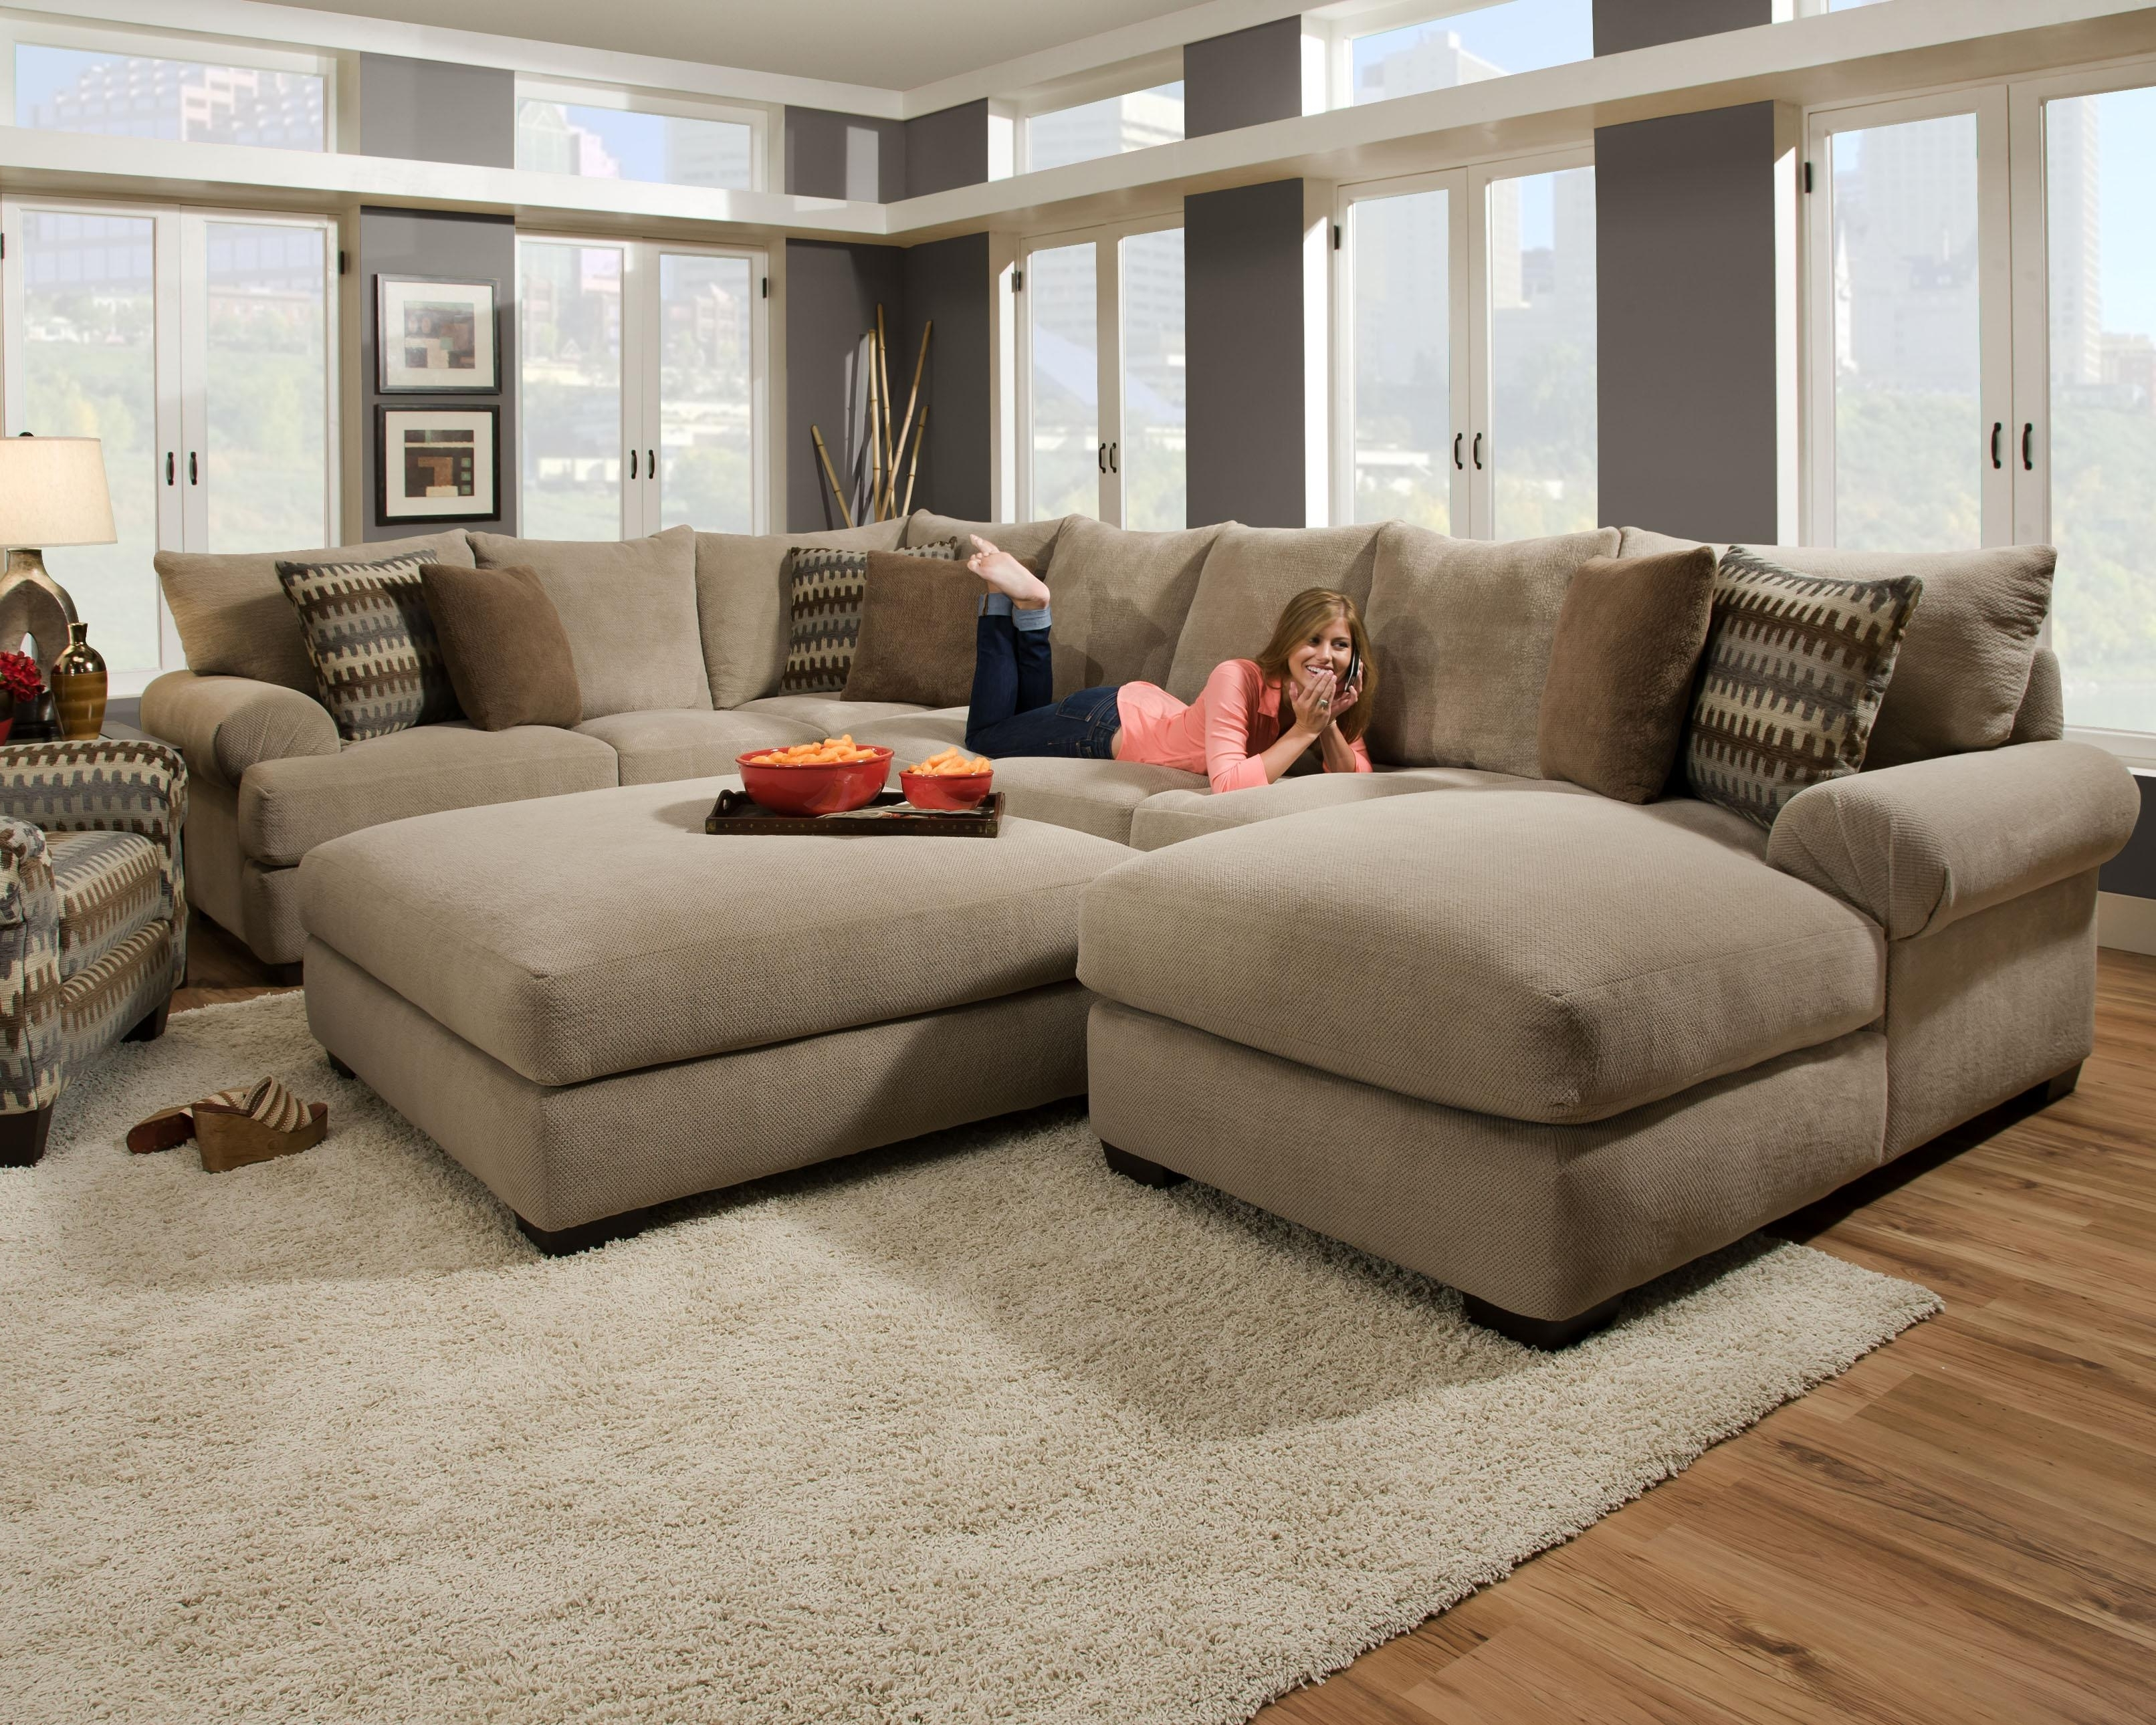 Most Recently Released Furniture: Interesting Living Room Interior Using Large Sectional Pertaining To Microfiber Sectionals With Chaise (View 11 of 15)